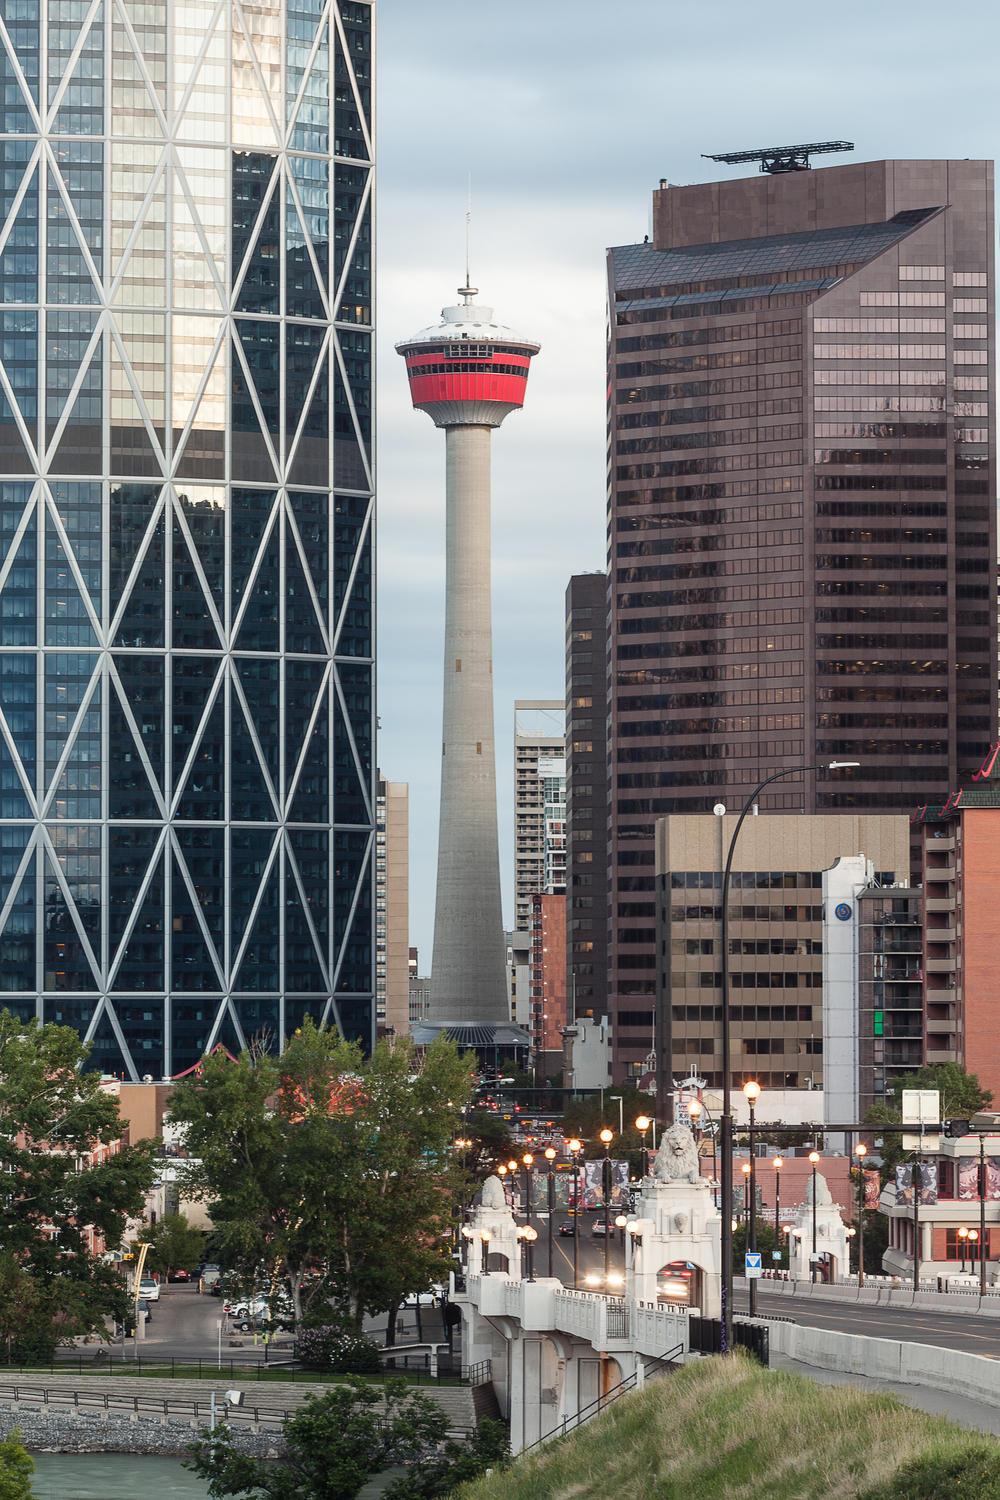 AN_GC_CalgaryTower_001.jpg